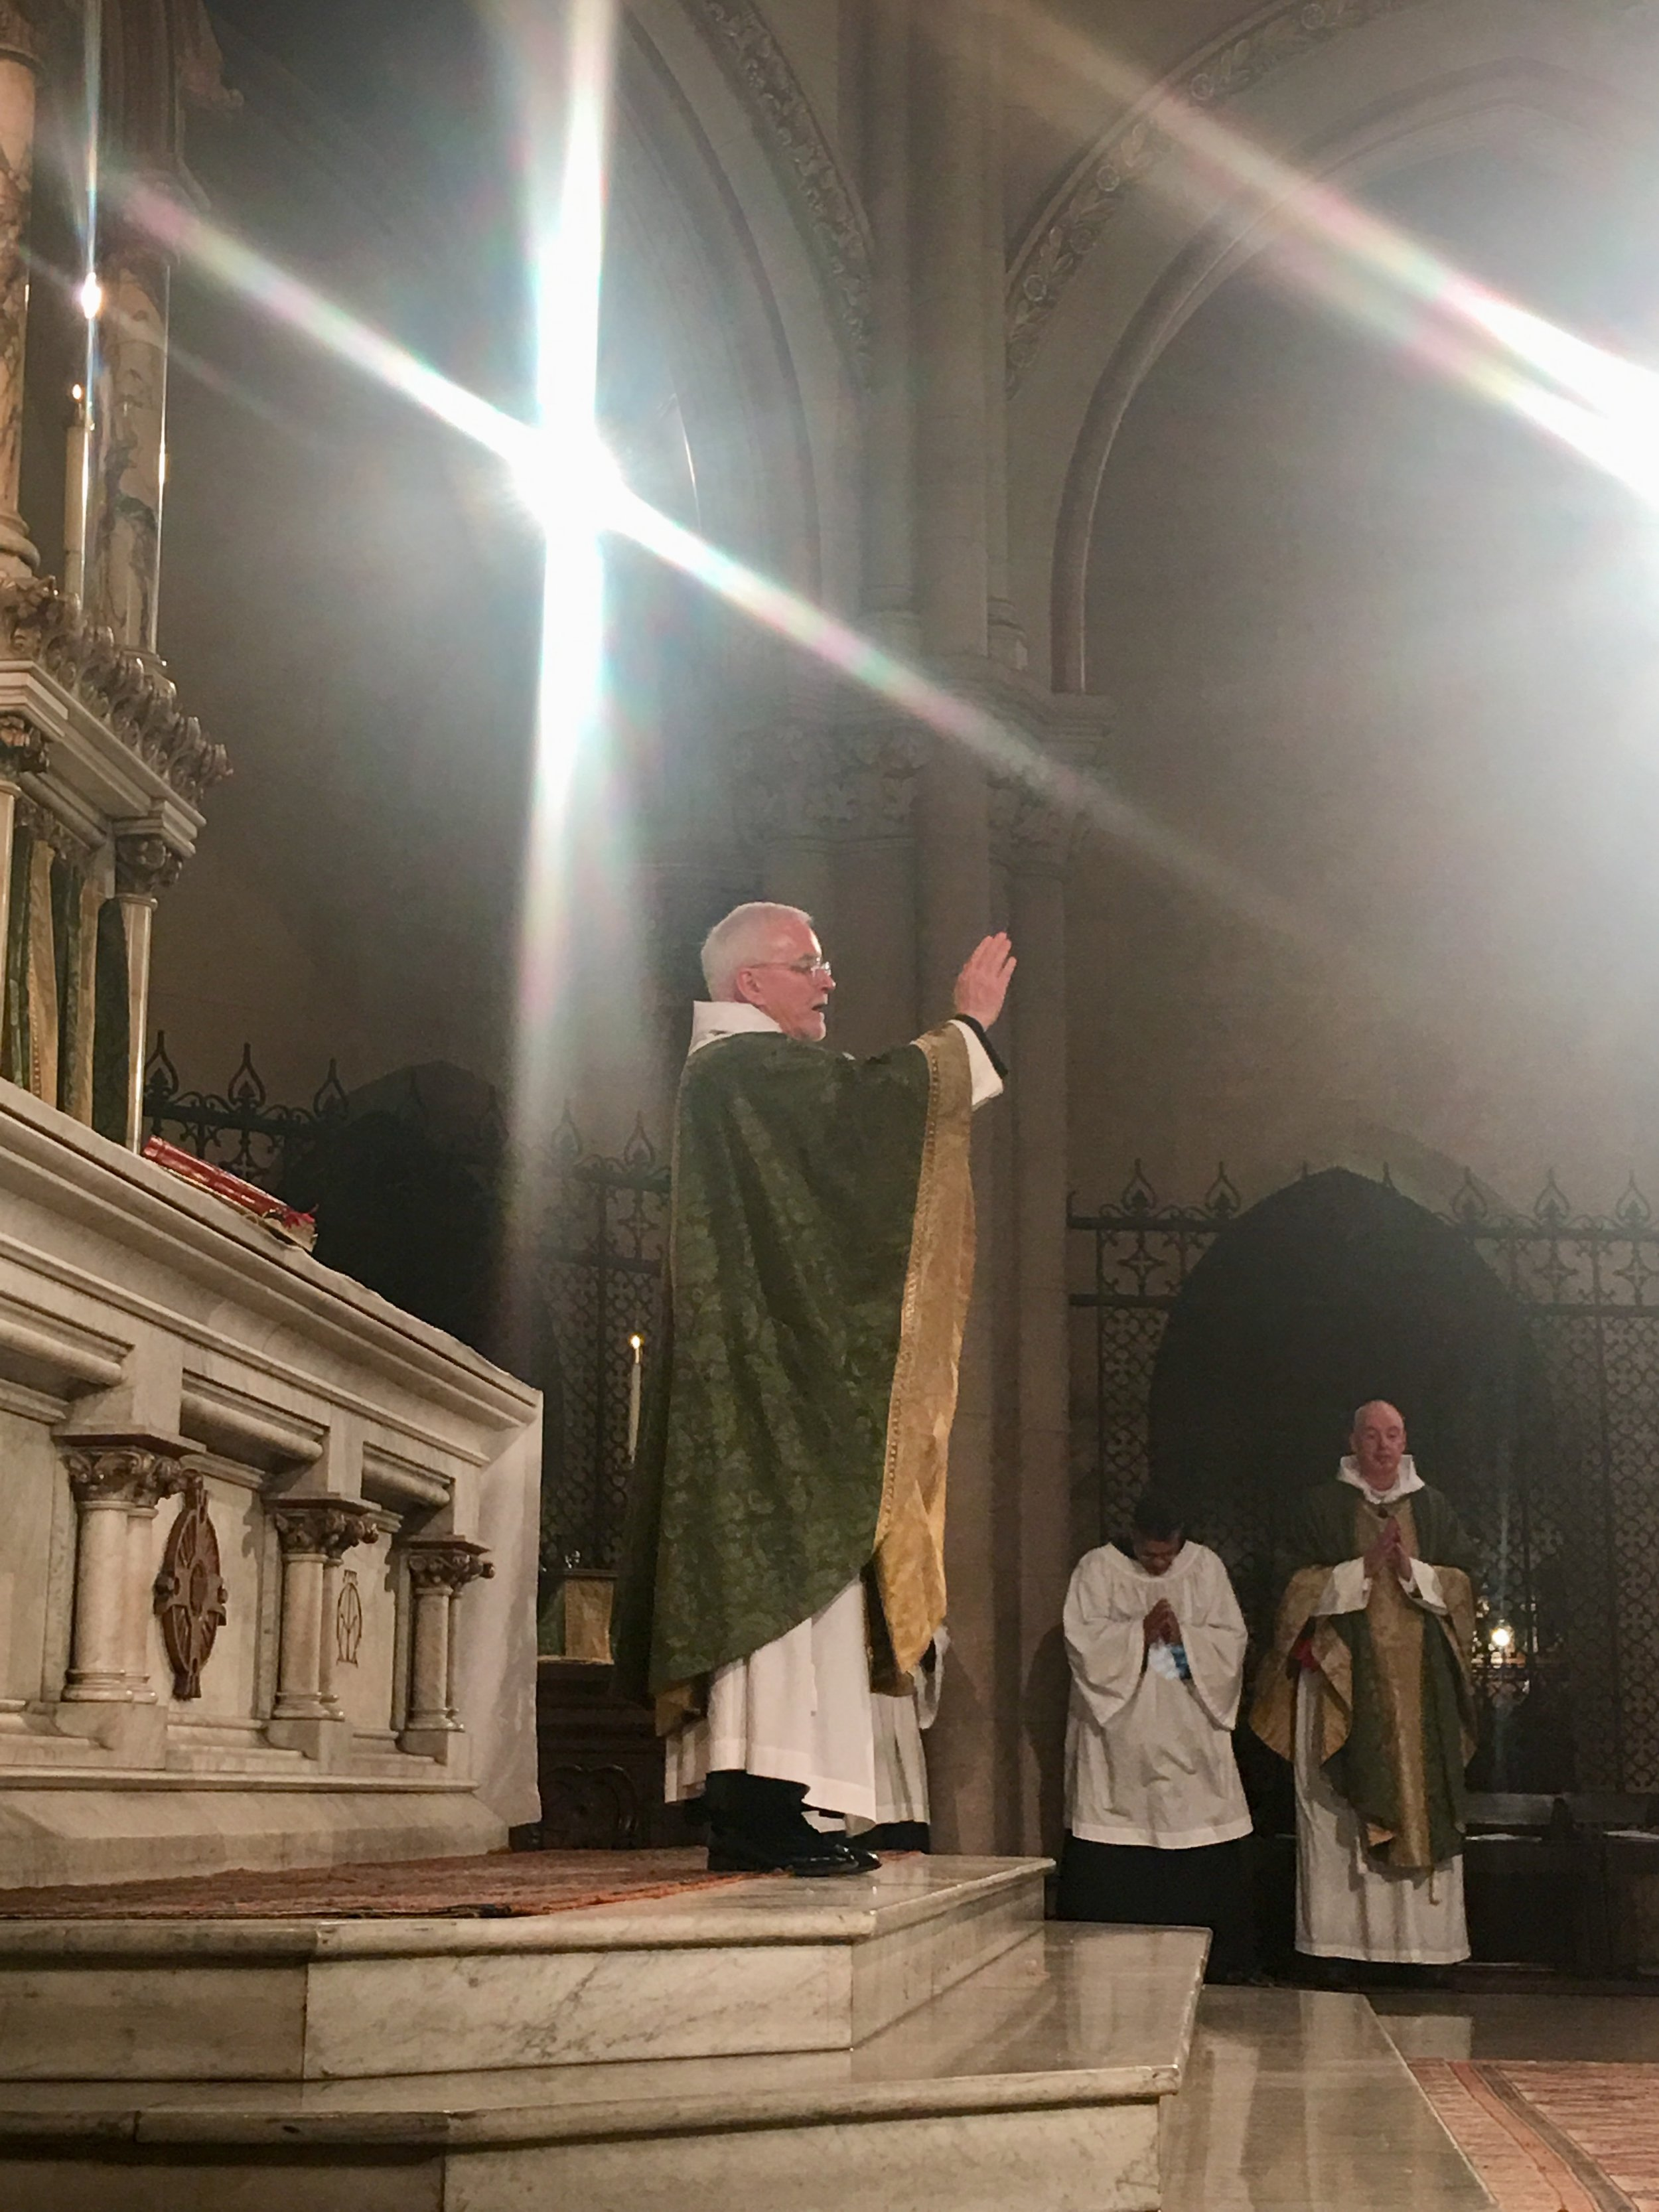 Father Jim Pace was celebrant and preacher for the Solemn Mass on Sunday, August 4, 2019.    Photo:  Renee Pecquex